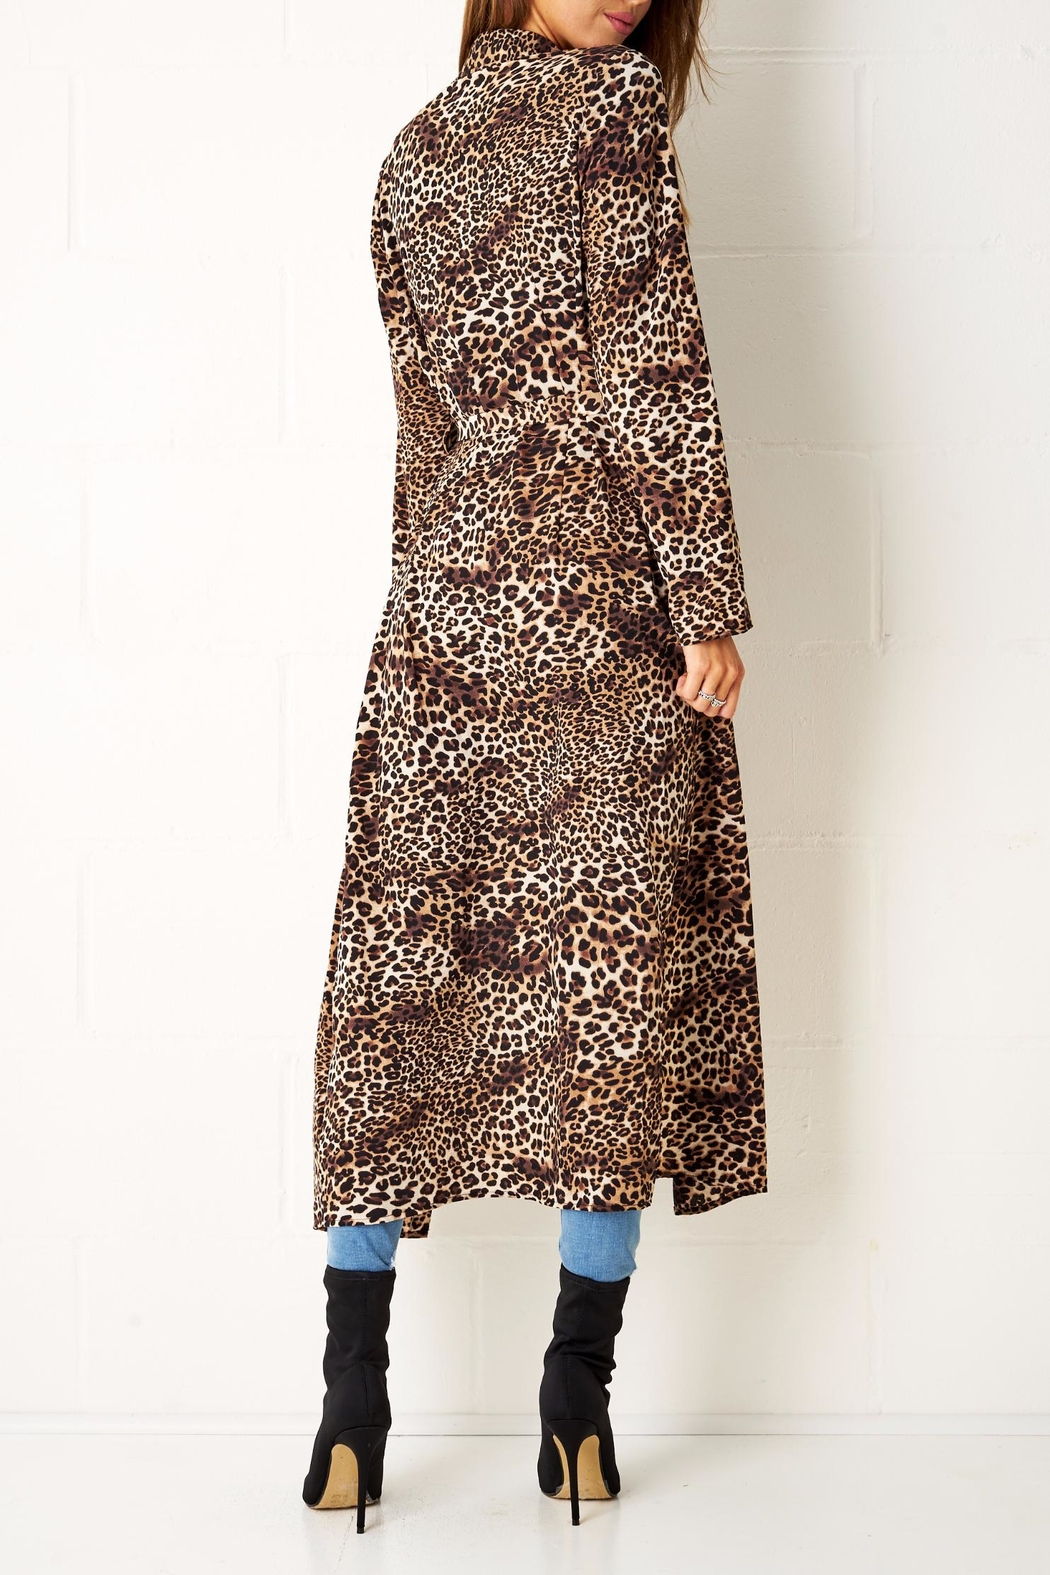 frontrow Leopard Print Coat - Side Cropped Image